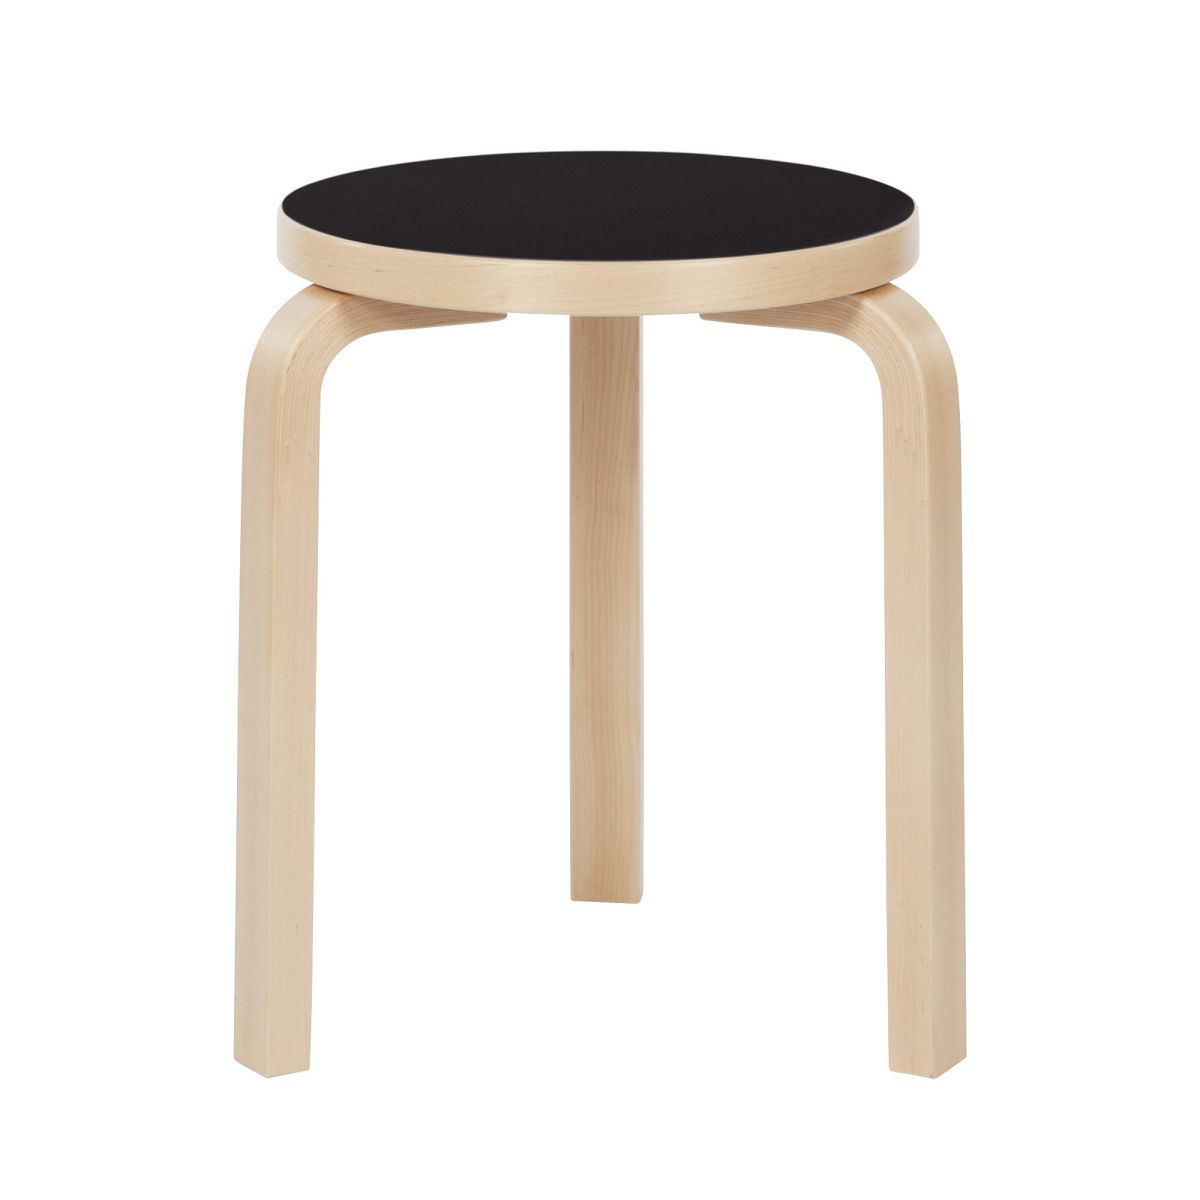 Stool-60-Legs-Birch-Black-Linoleum-2157365